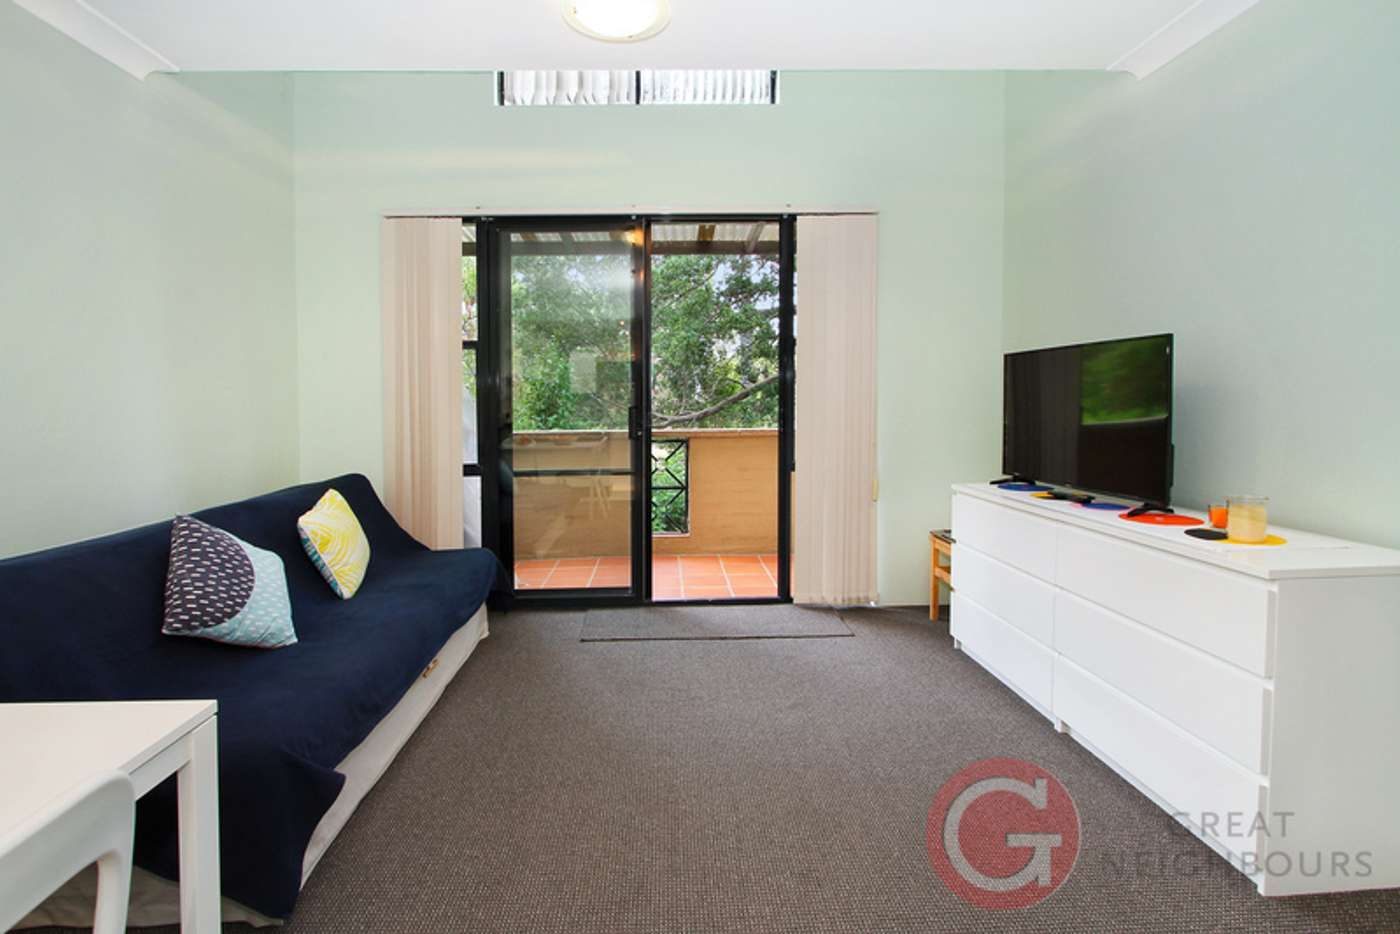 Main view of Homely apartment listing, 36/5-17 Pacific Highway, Roseville NSW 2069